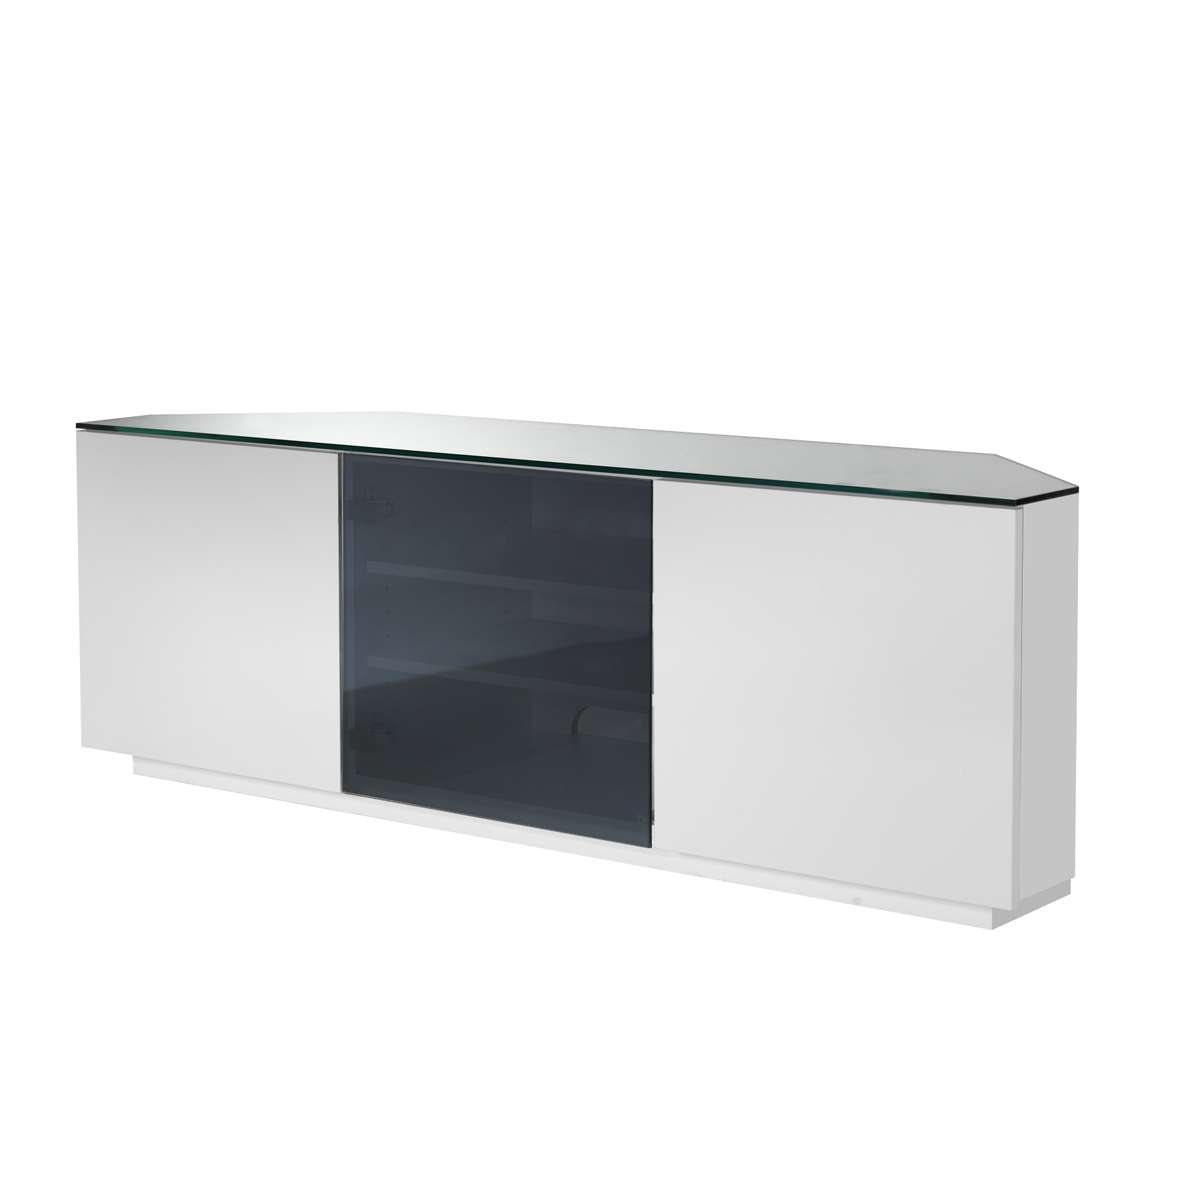 Ukcf Milan White Gloss & Black Glass Corner Tv Stand 150Cm Pertaining To Contemporary Corner Tv Stands (View 13 of 15)